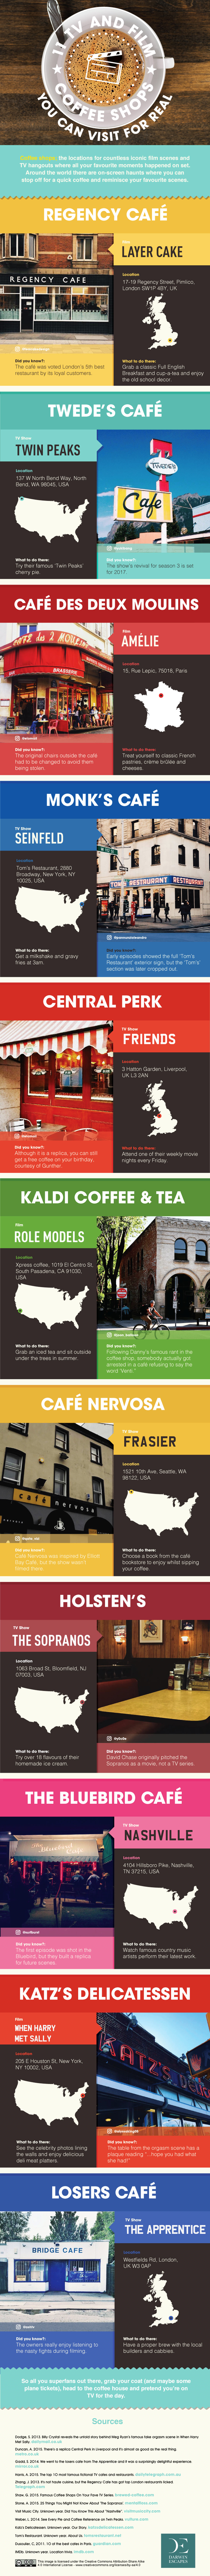 TV and Movie Coffee Shops You Can Dine For Real Infographic